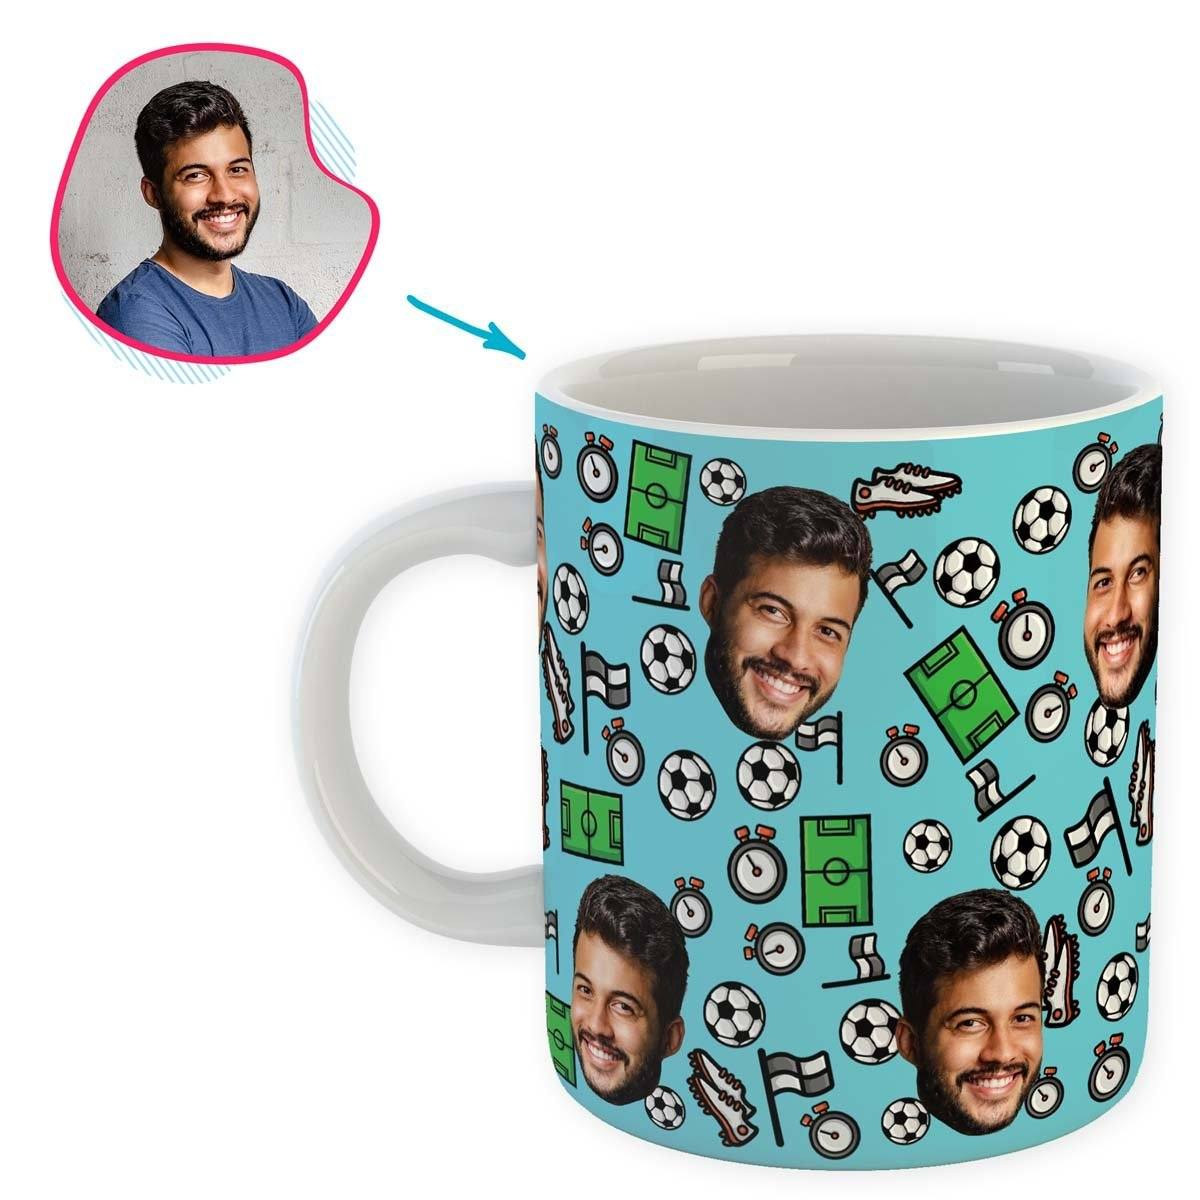 blue Football mug personalized with photo of face printed on it